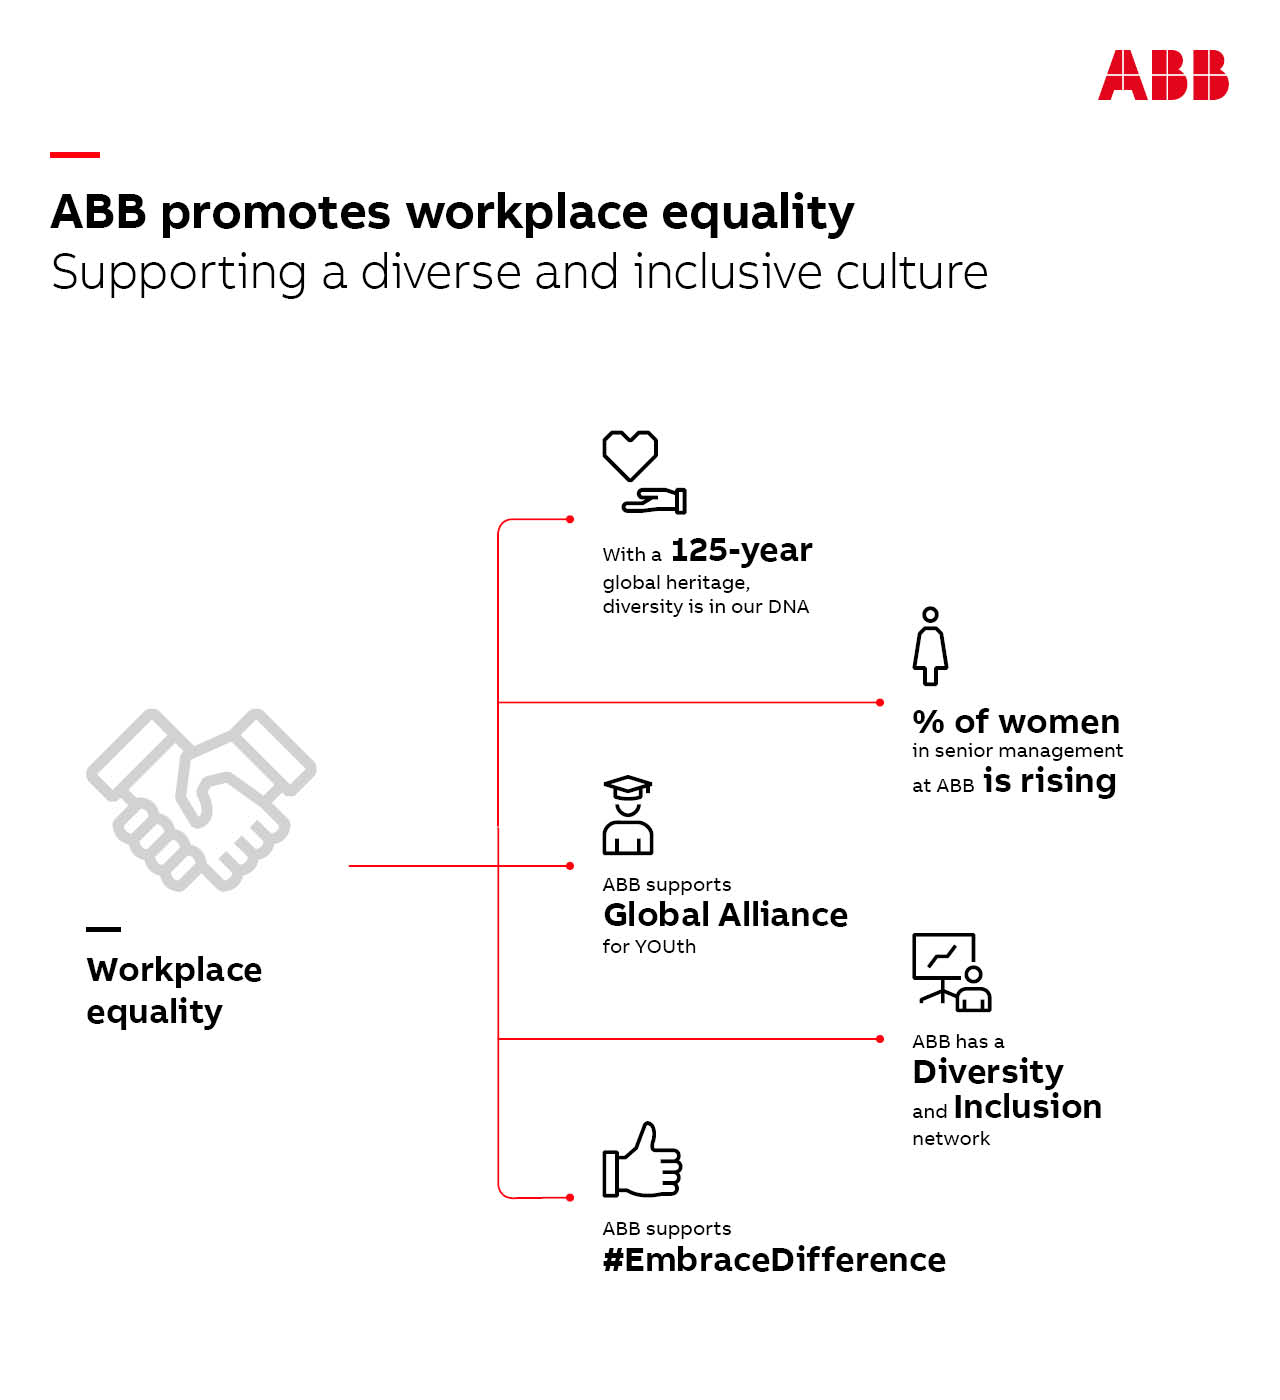 ABB has been recognized as a finalist in the ADIPEC Awards for diversity and inclusion. ABB is an employer of choice, and supports workplace equality with initiatives such as inclusive leadership training, flexible work practices and mentoring programs.